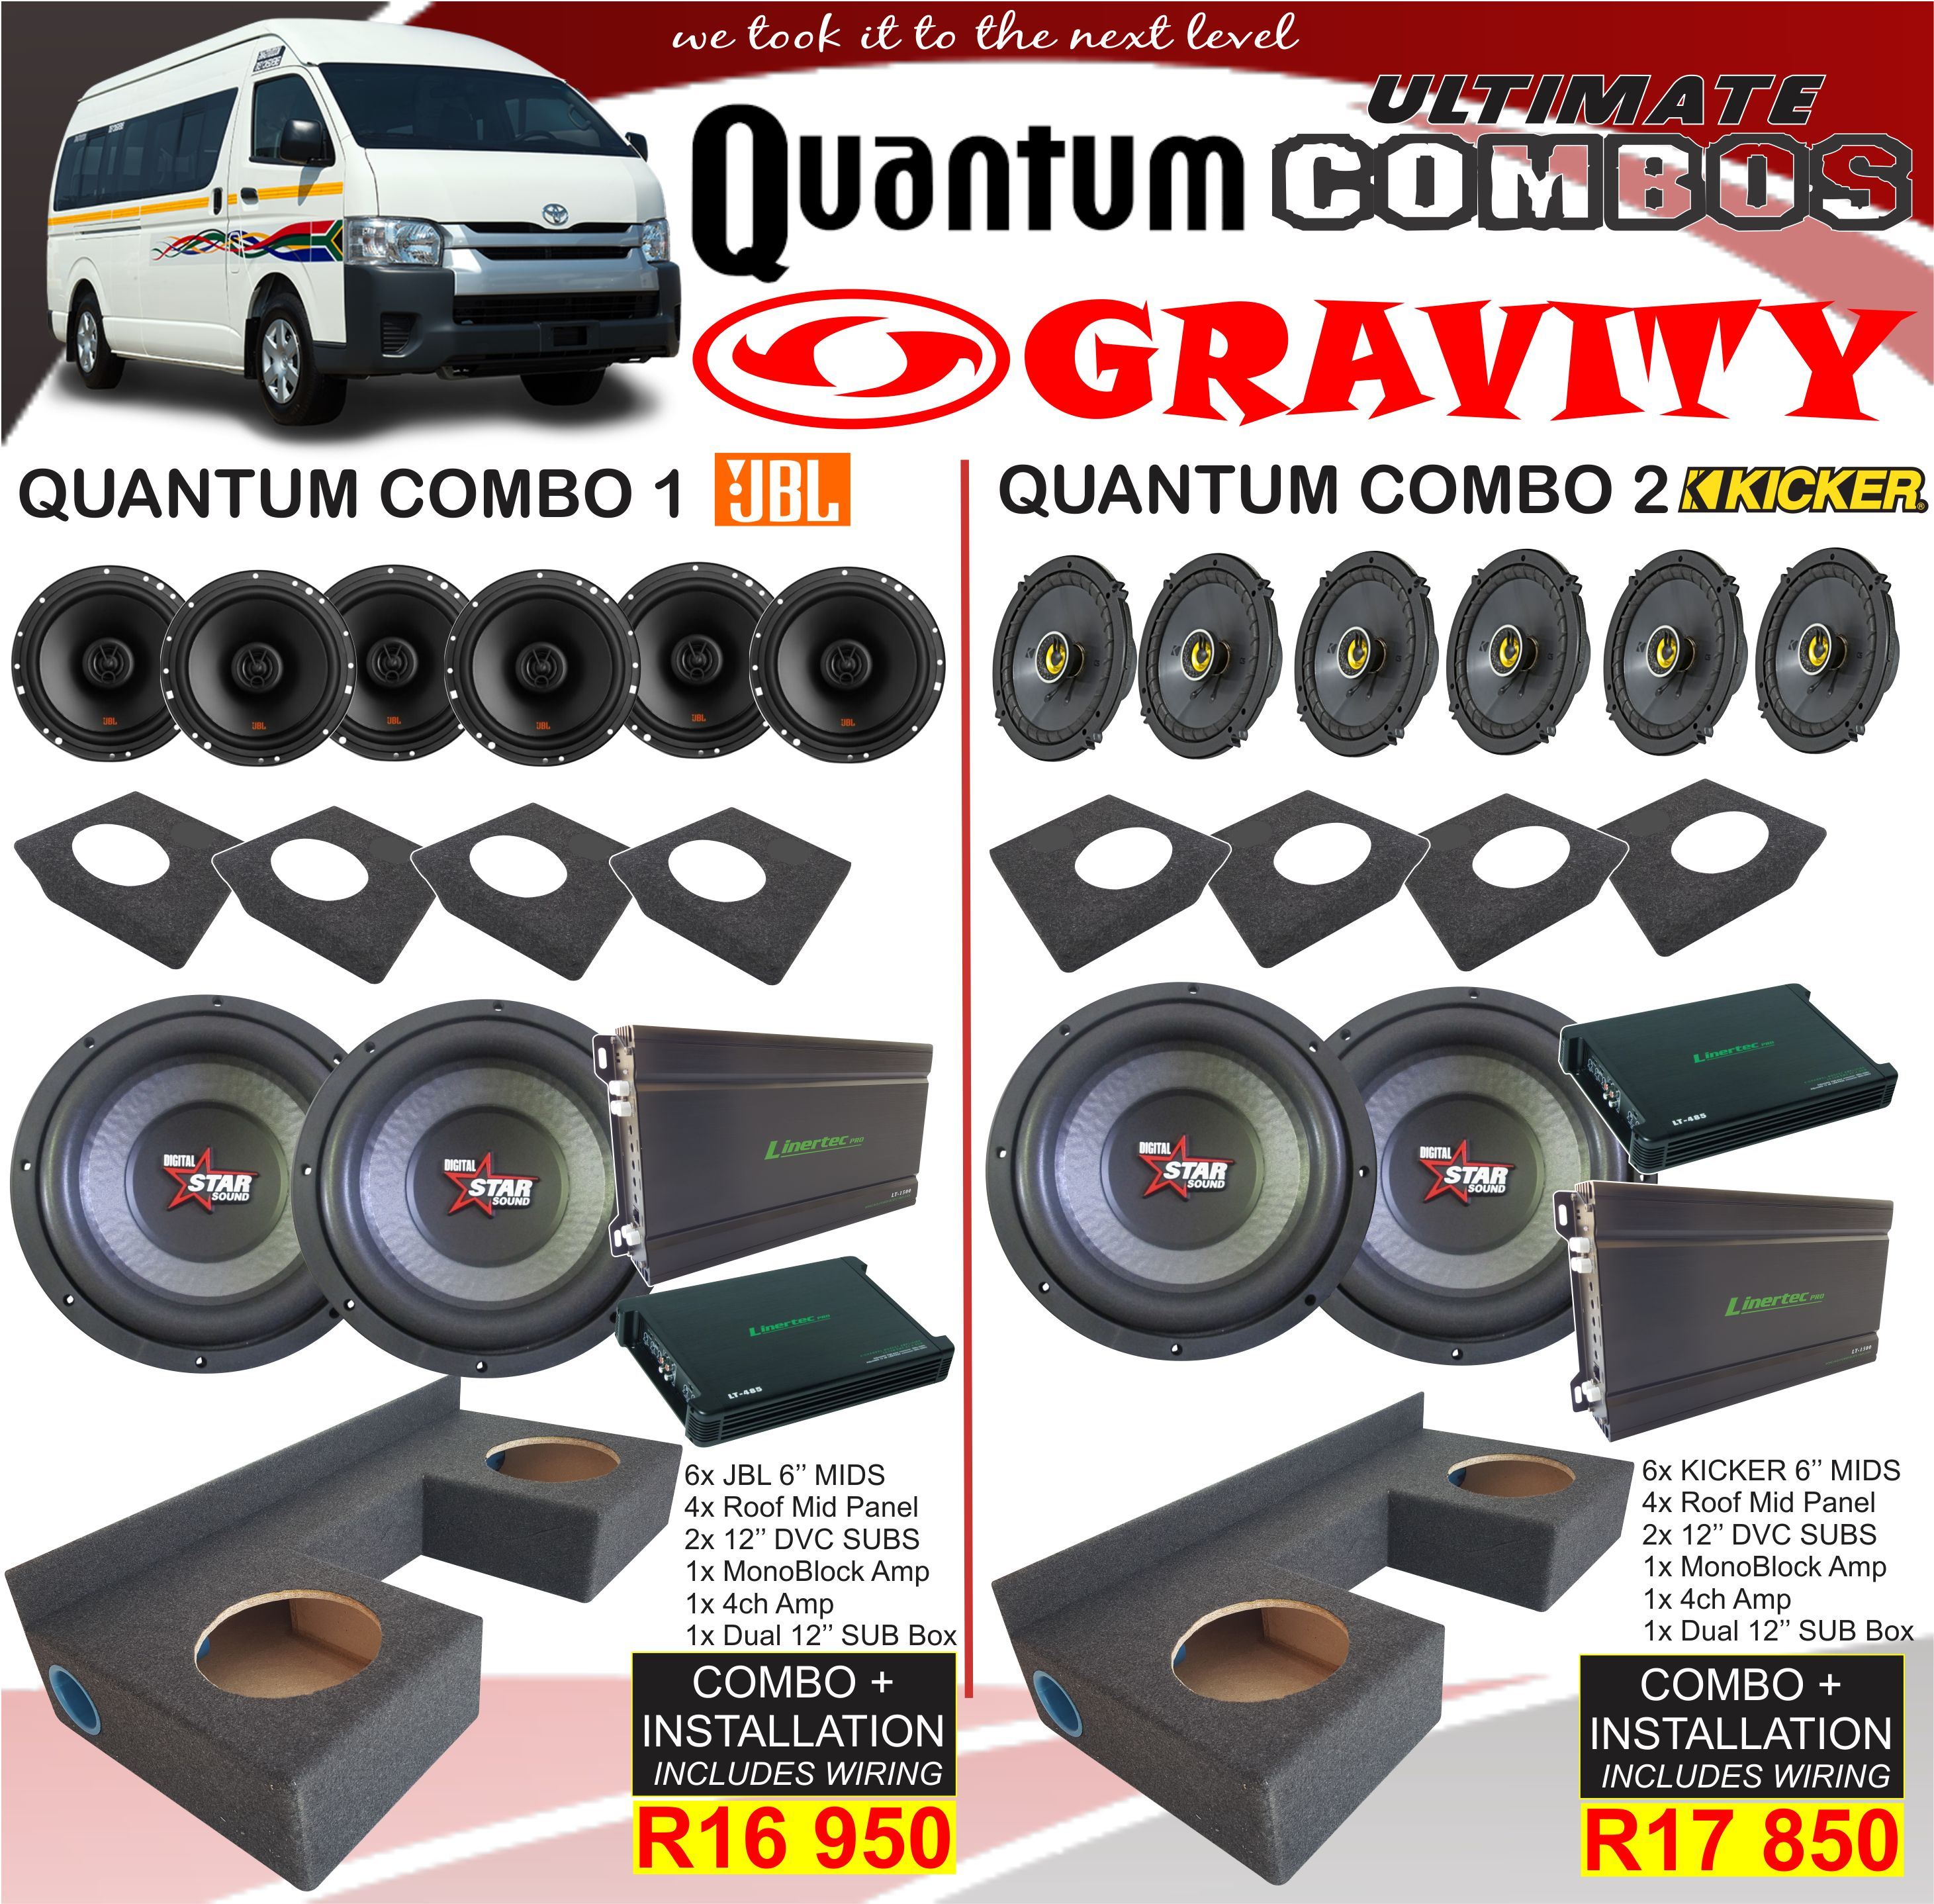 CAR AUDIO SOUND INSTALLATION , TAXI HIACE QUANTUM COMBOS, TAXI SOUND INSTALLATION , car audio combo , car audio equipment , sony , pioneer ,jvc , kicker , targa , xtc , jbl . starsound , focal , one nav , ford ranger combo , toyota hilux combos , double cab combos , TOTYATA TAXI COMBOS ,